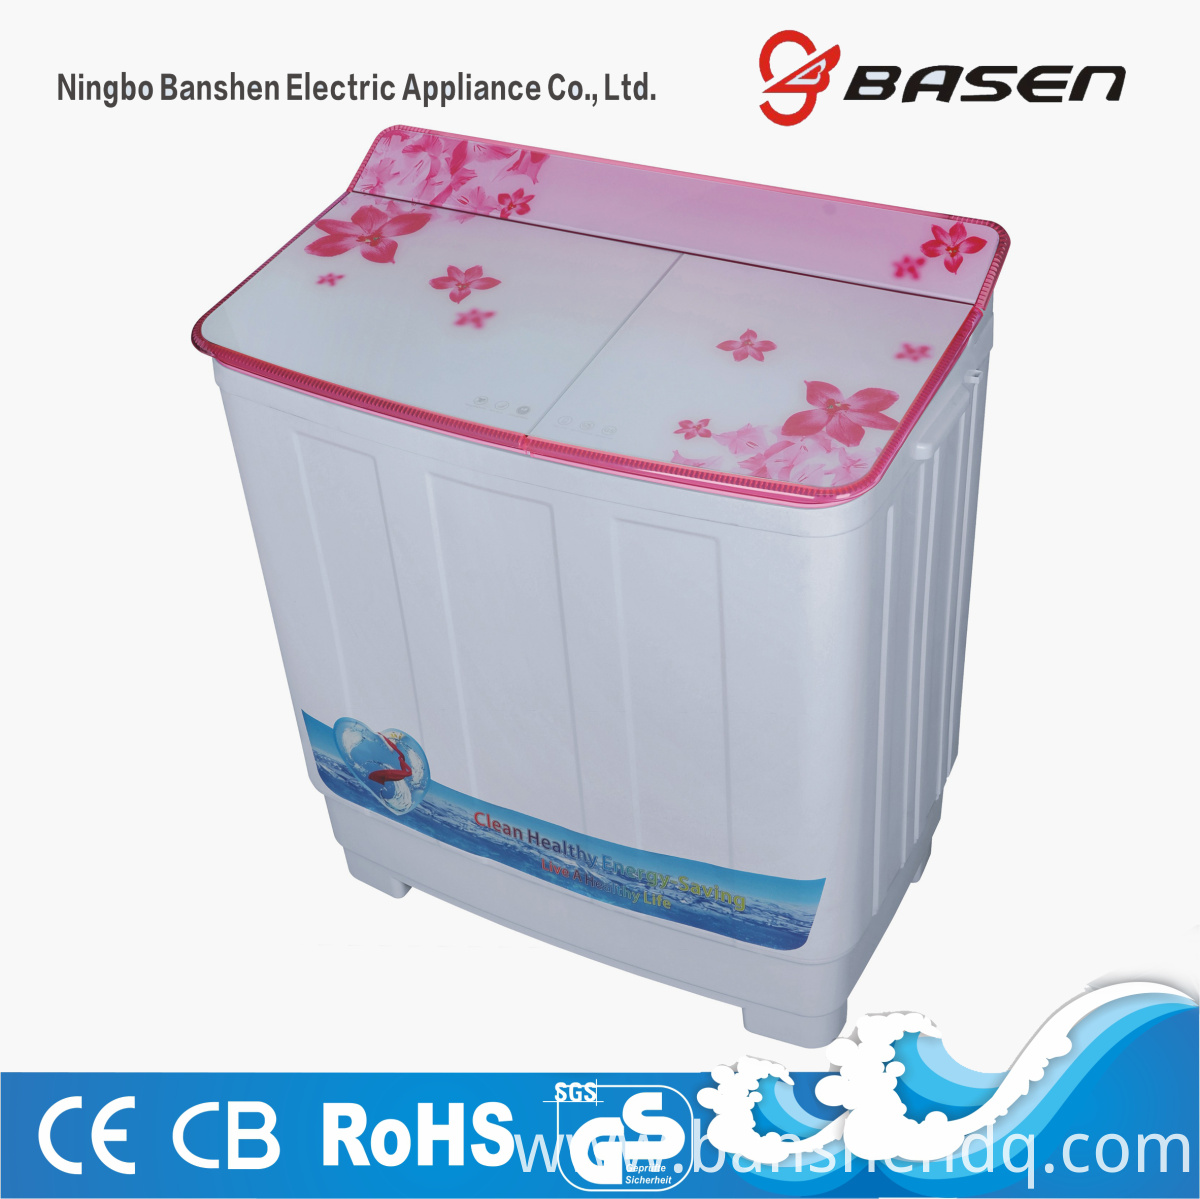 7.5kg twin tub washing machine